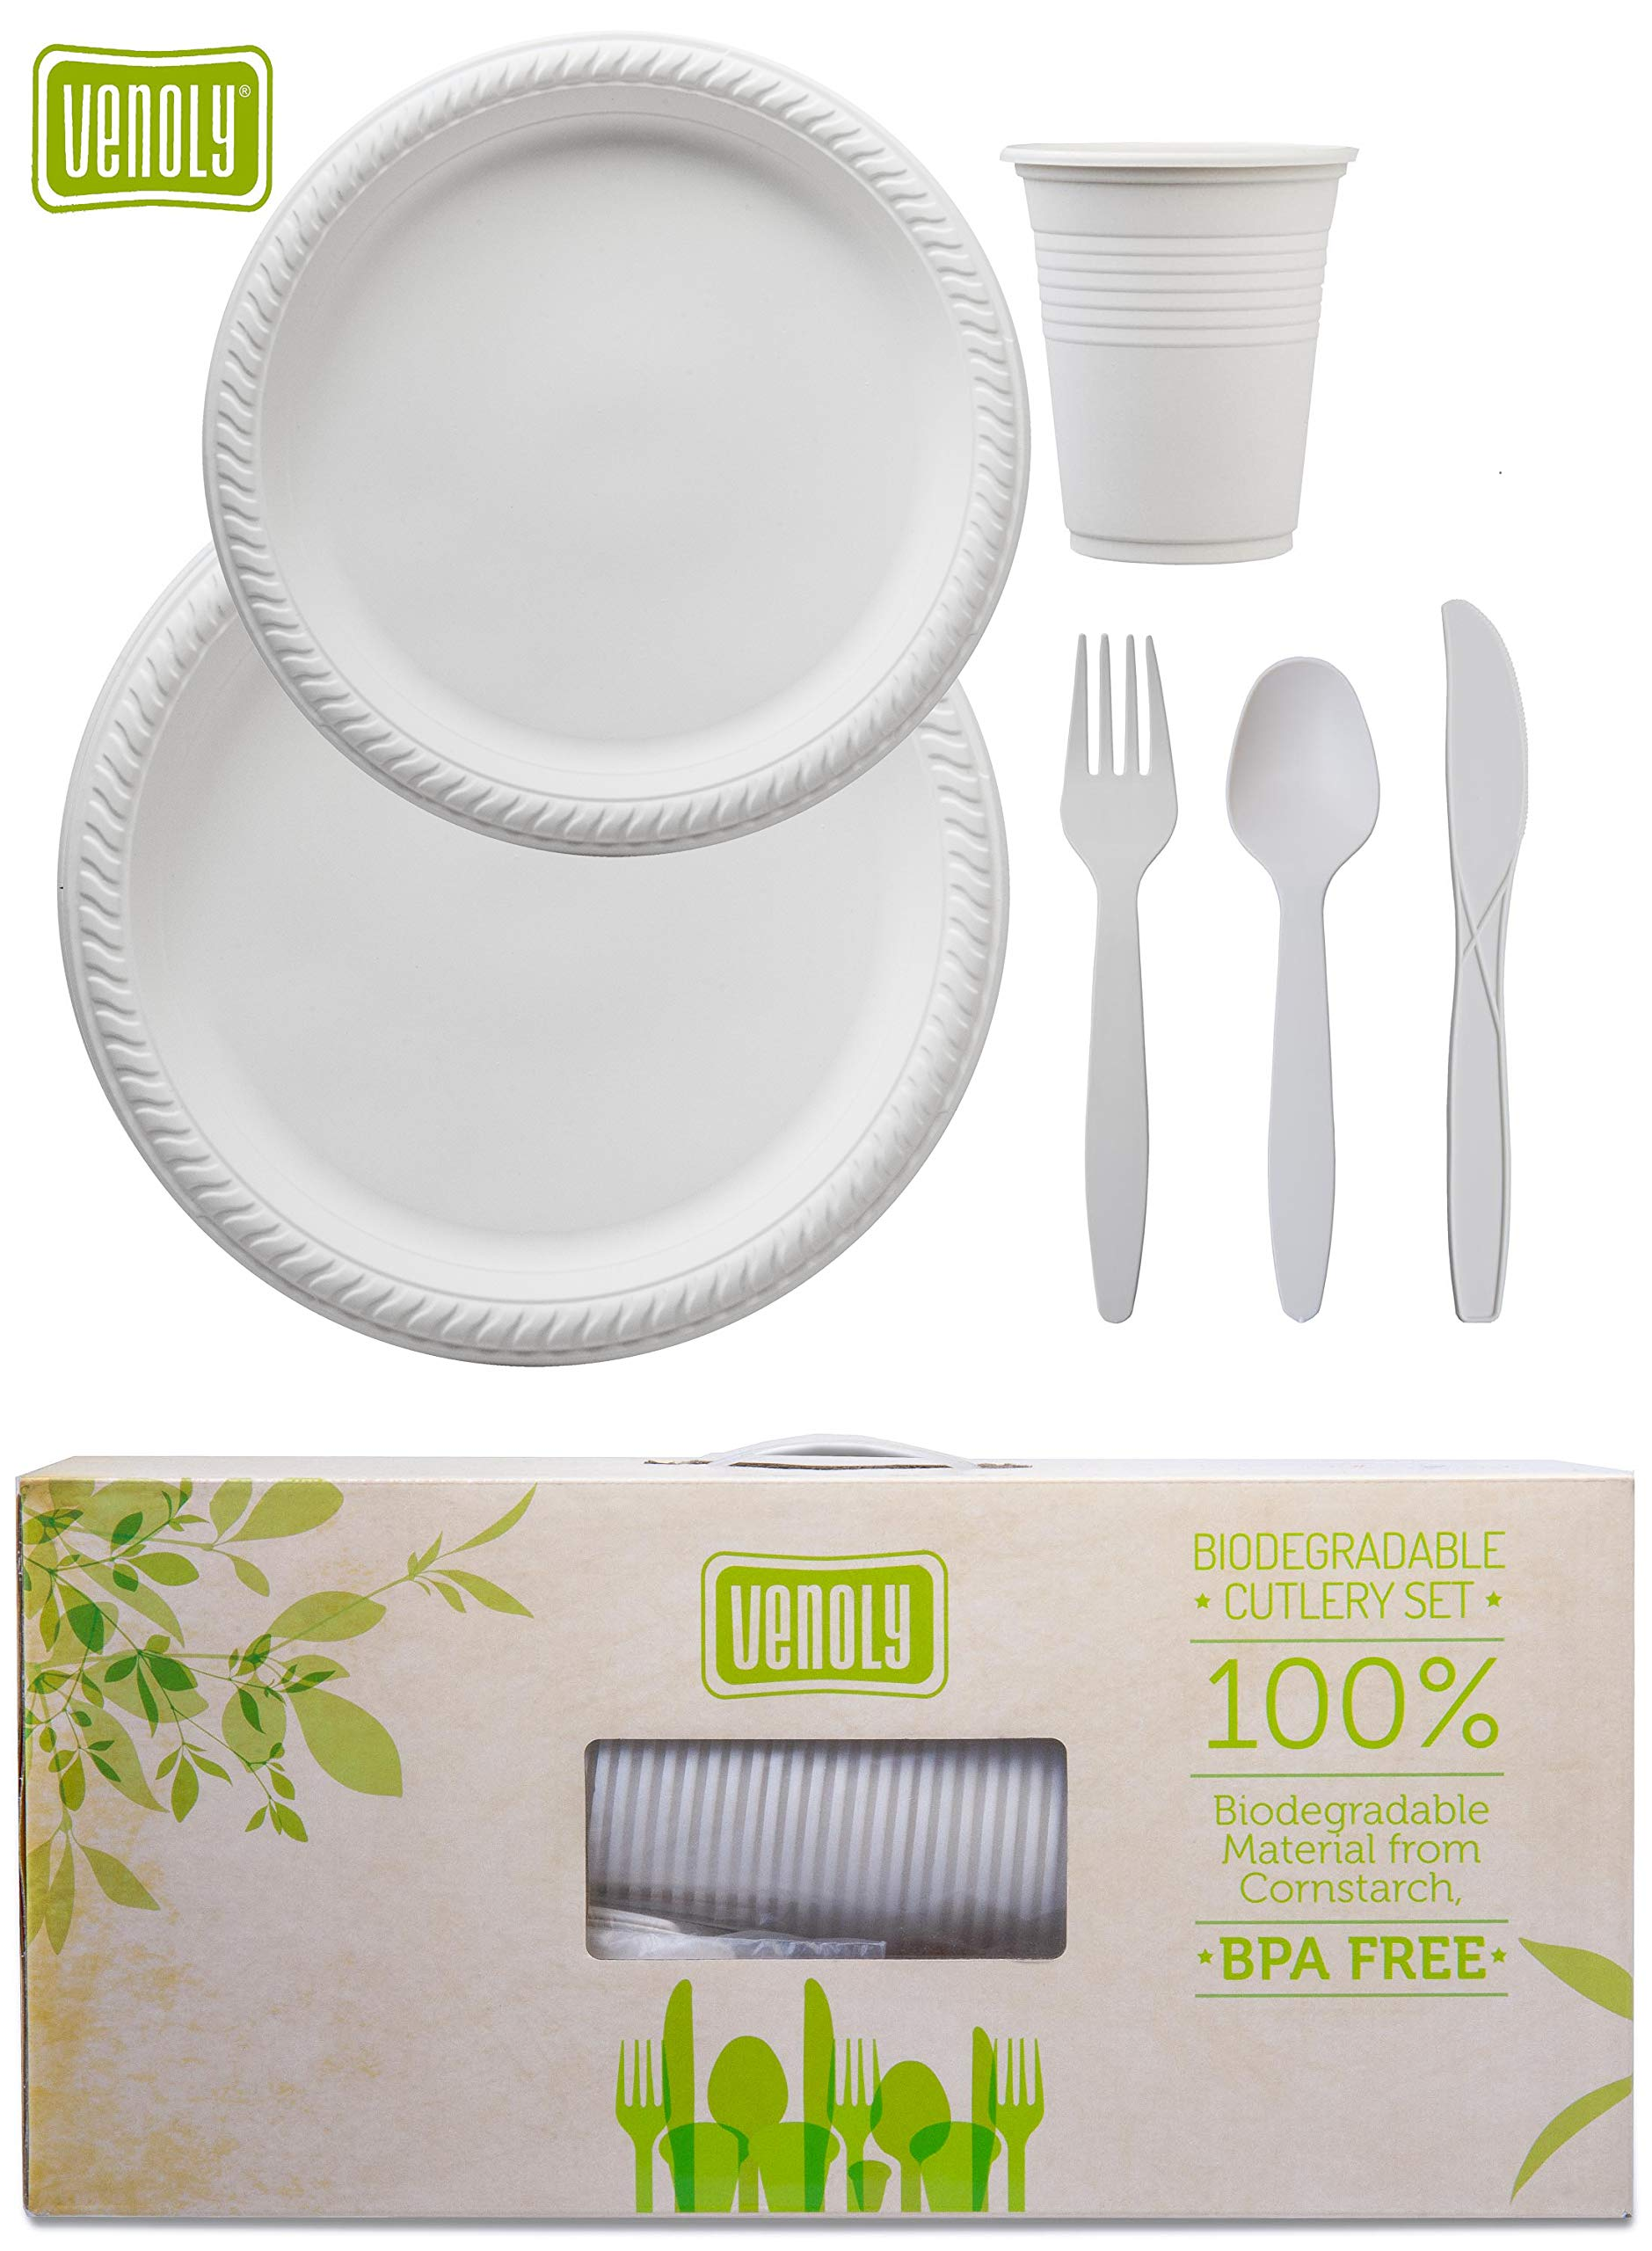 Venoly 100% Disposable/Biodegradable/Compostable Forks/Knives/Spoons Cutlery Set - 100 Forks, 100 Knives, 100 Spoons, 100 Cups, 50pc 7'' Plates, 50pc 9'' Plates, 500pc Total, Made From Cornstarch